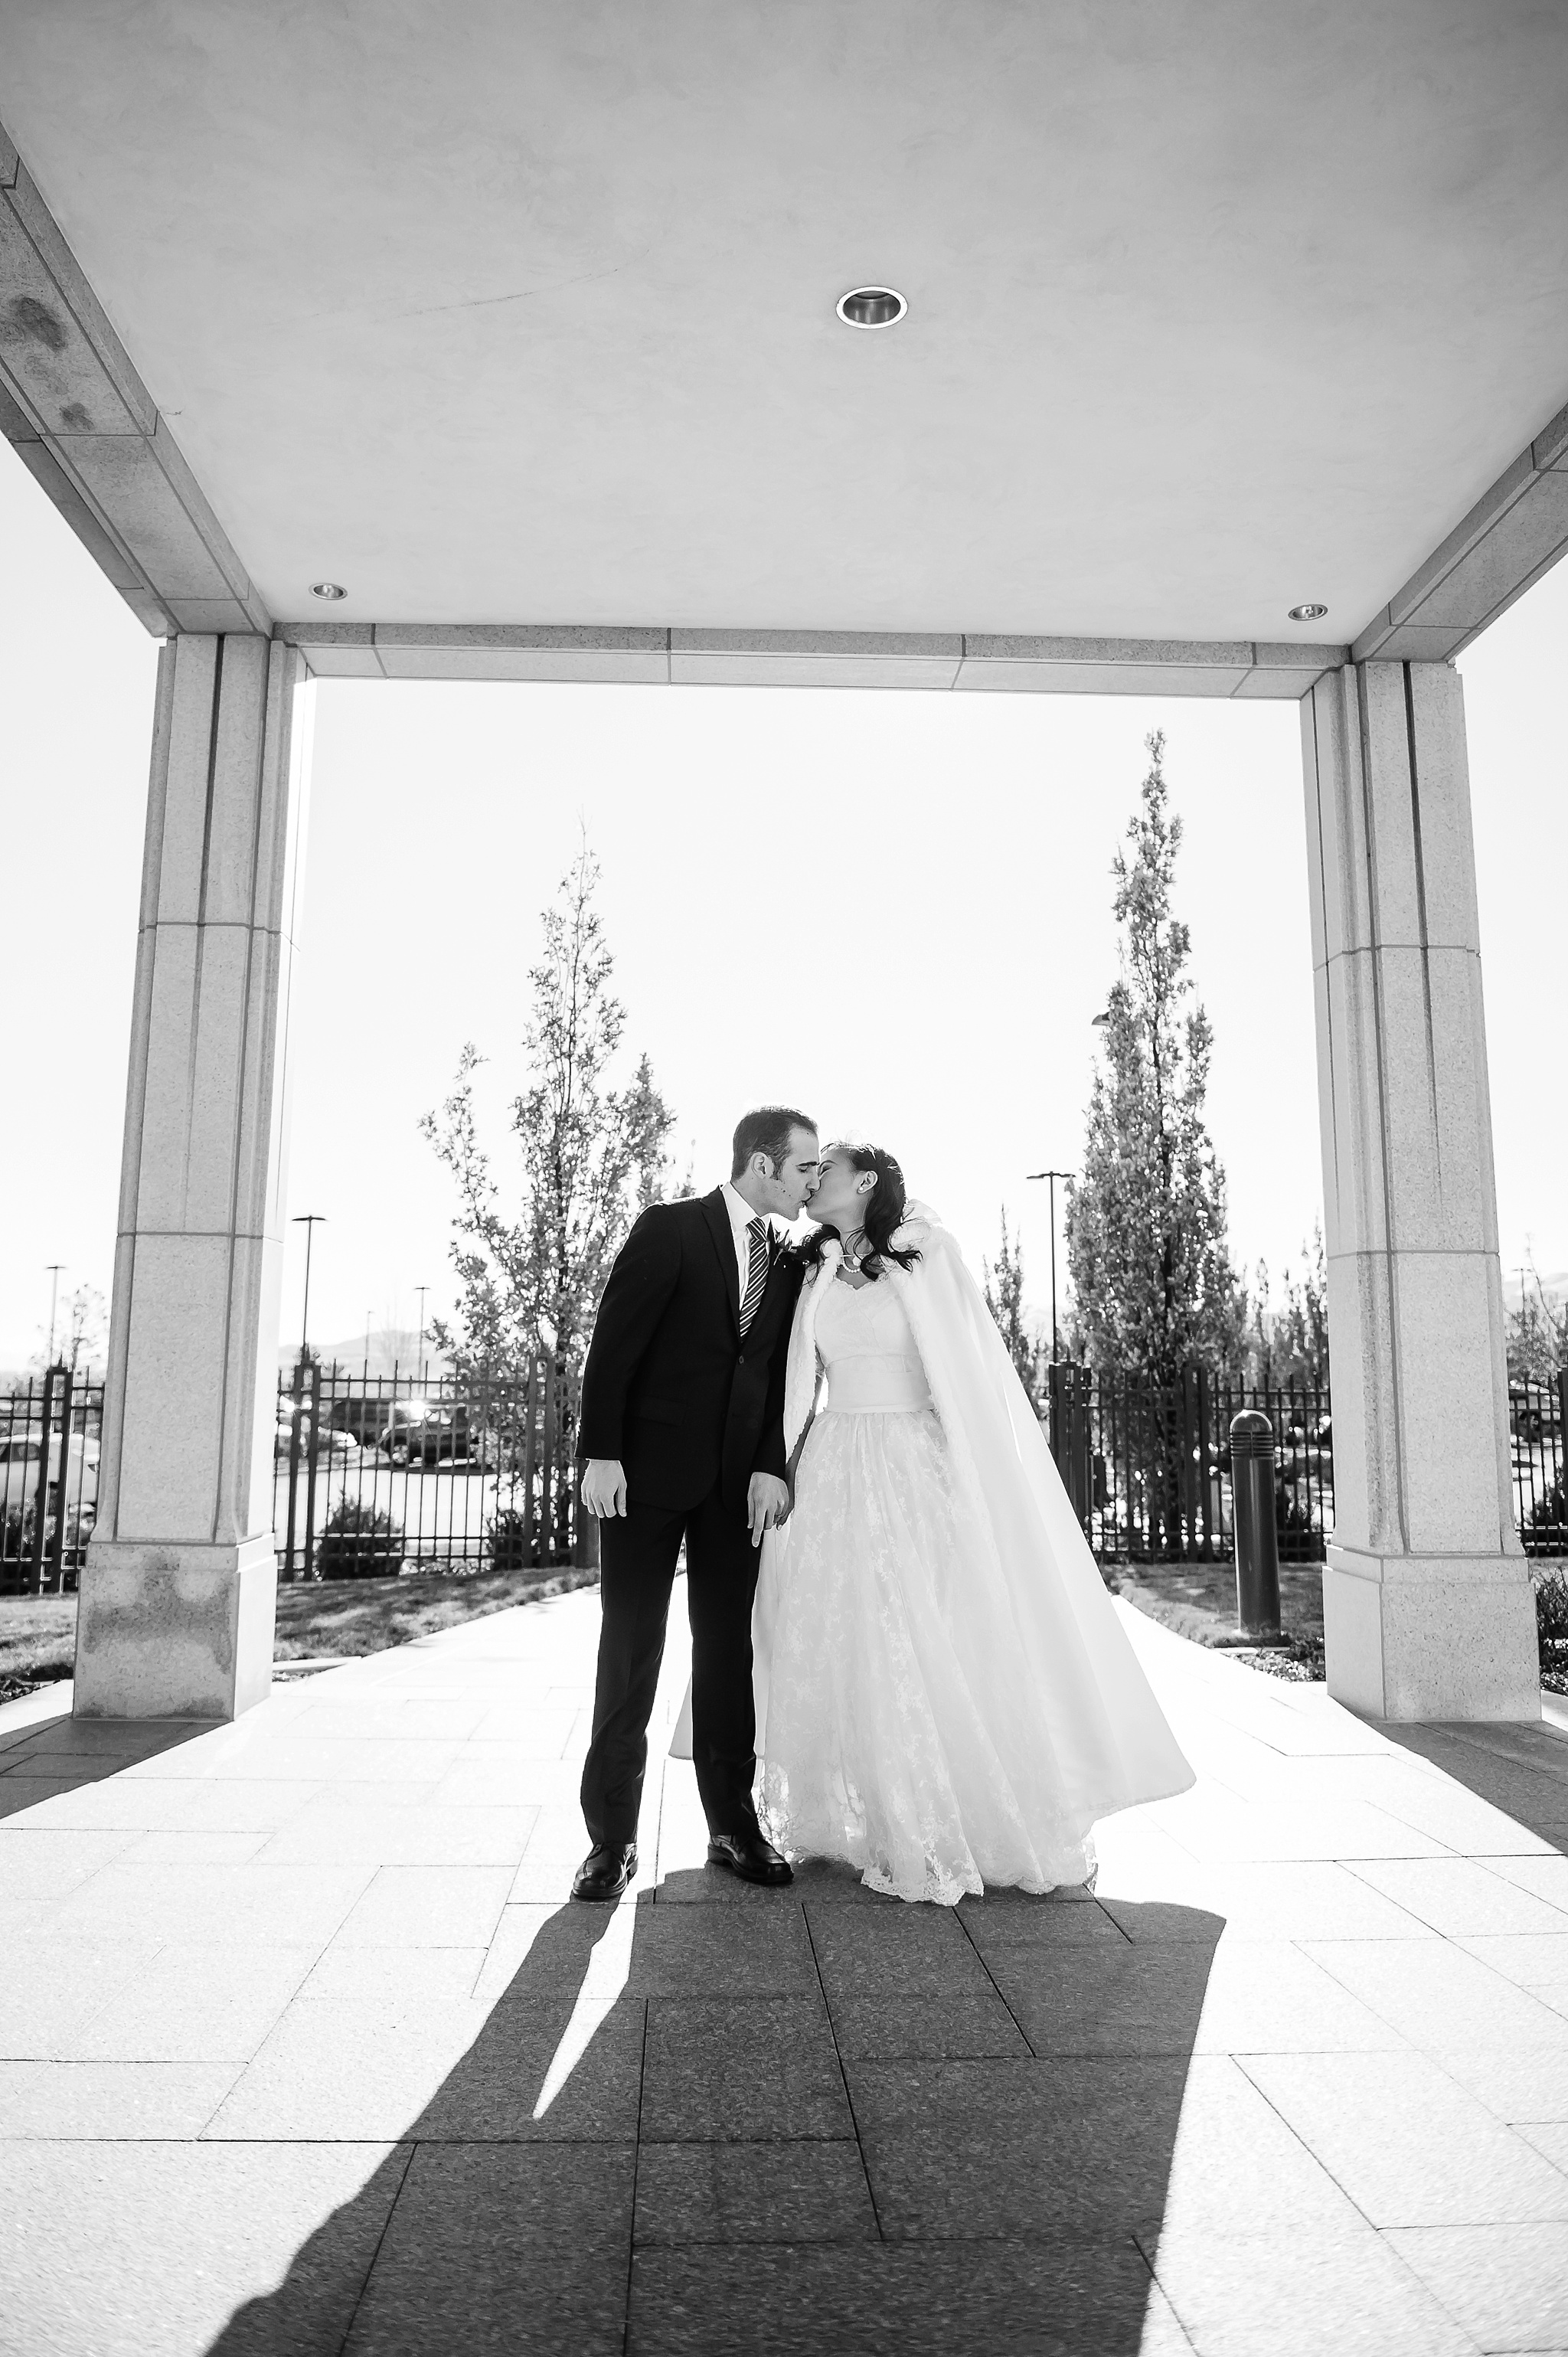 Salt Lake City Wedding Photographer Ali Sumsion 018